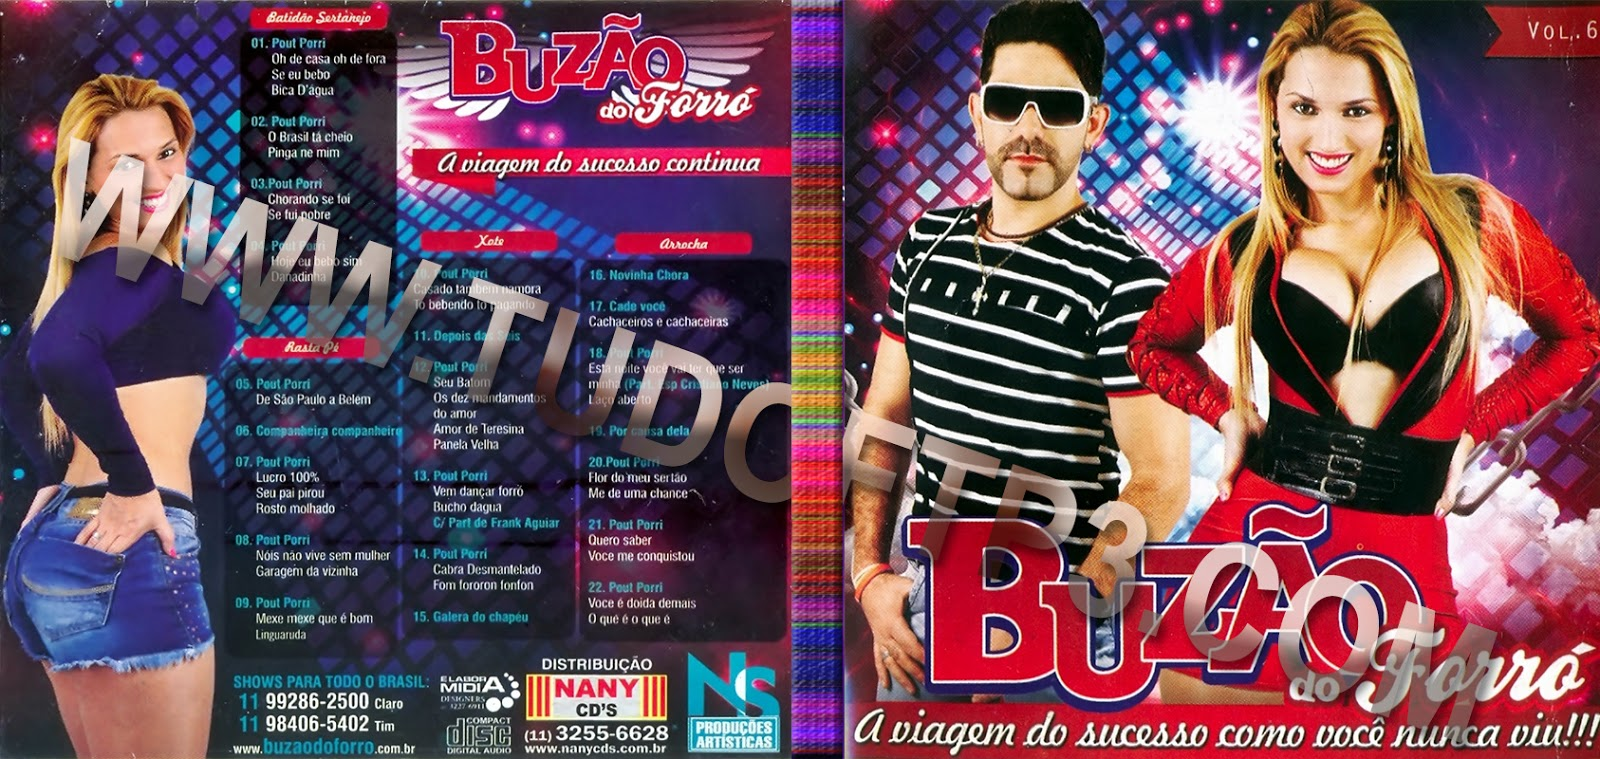 cd buzao do forro